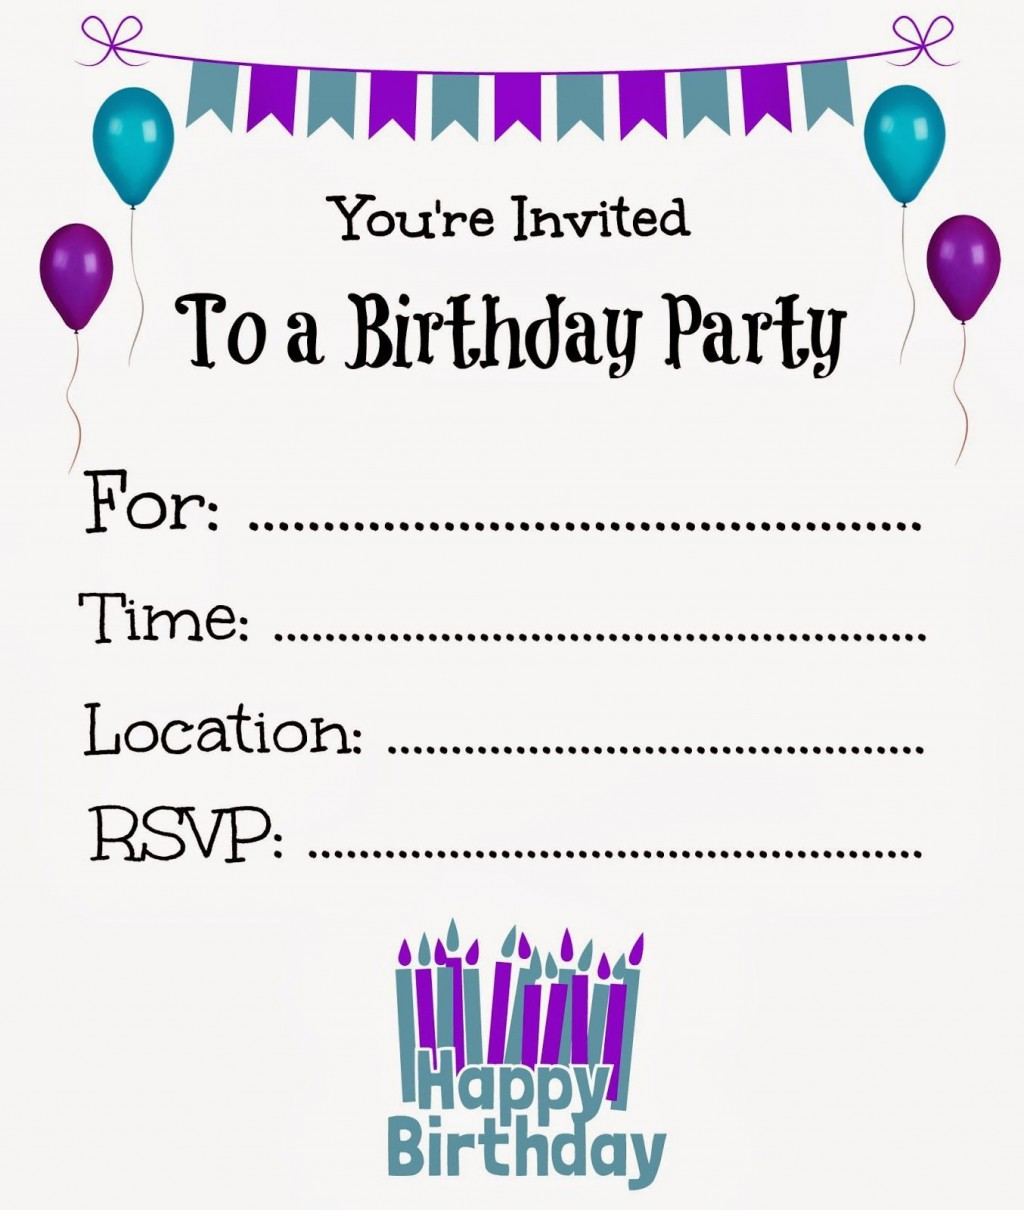 008 Fascinating Party Invite Template Word Example  Holiday Invitation Wording Sample Retirement Free EditableLarge